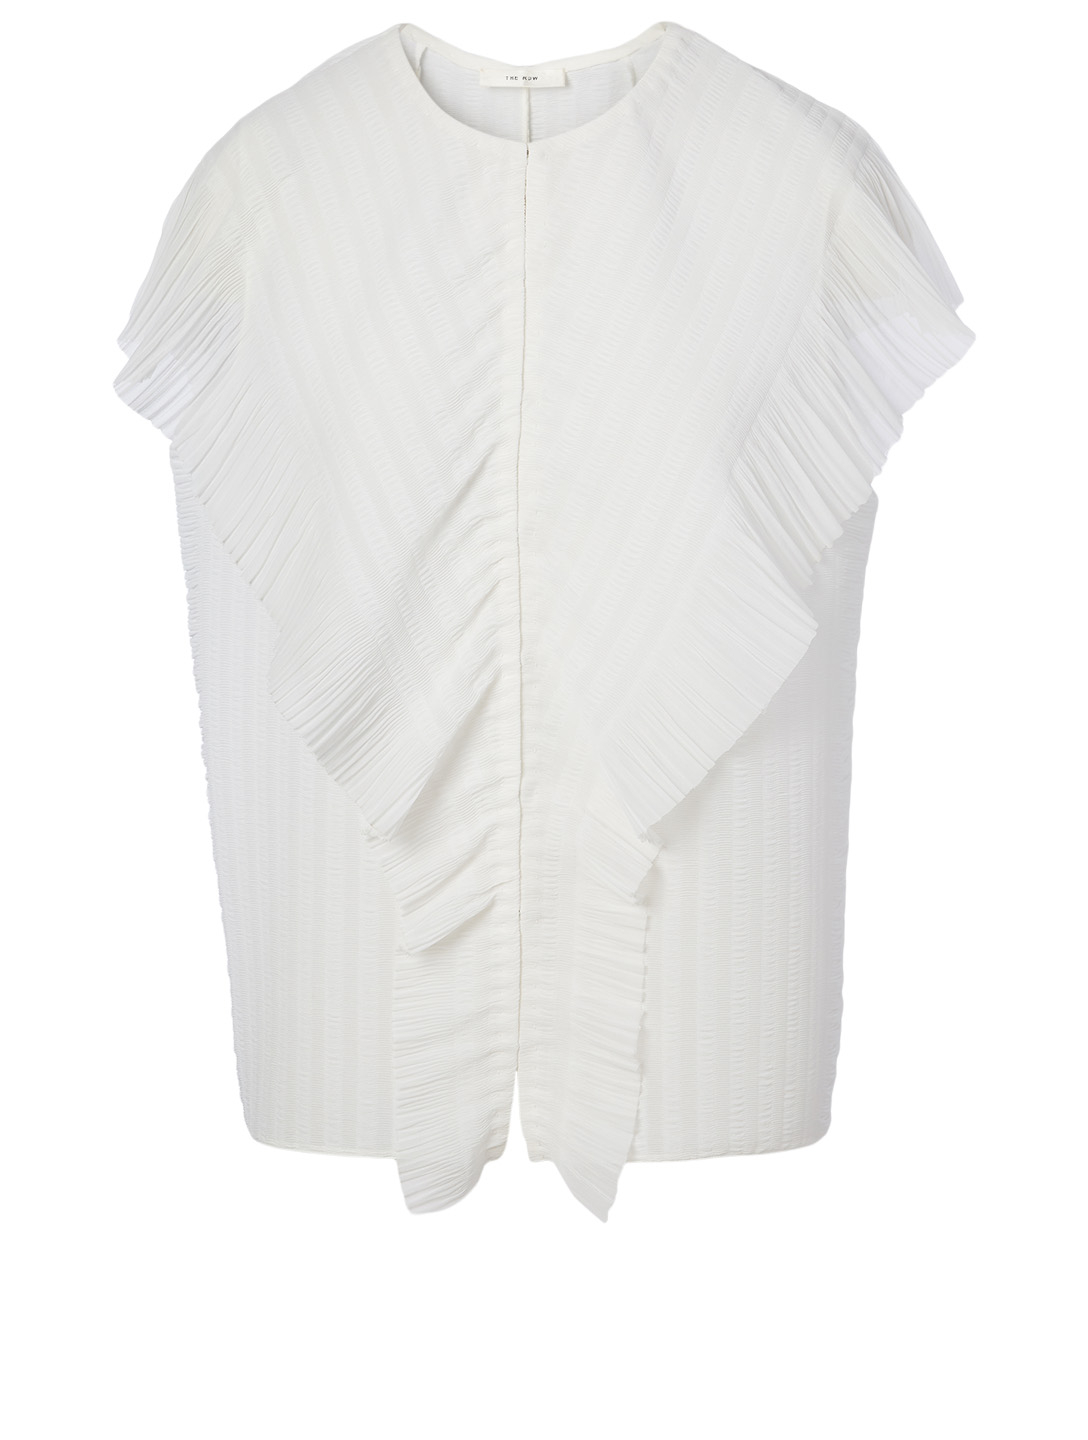 THE ROW Wiola Sleeveless Blouse Women's White